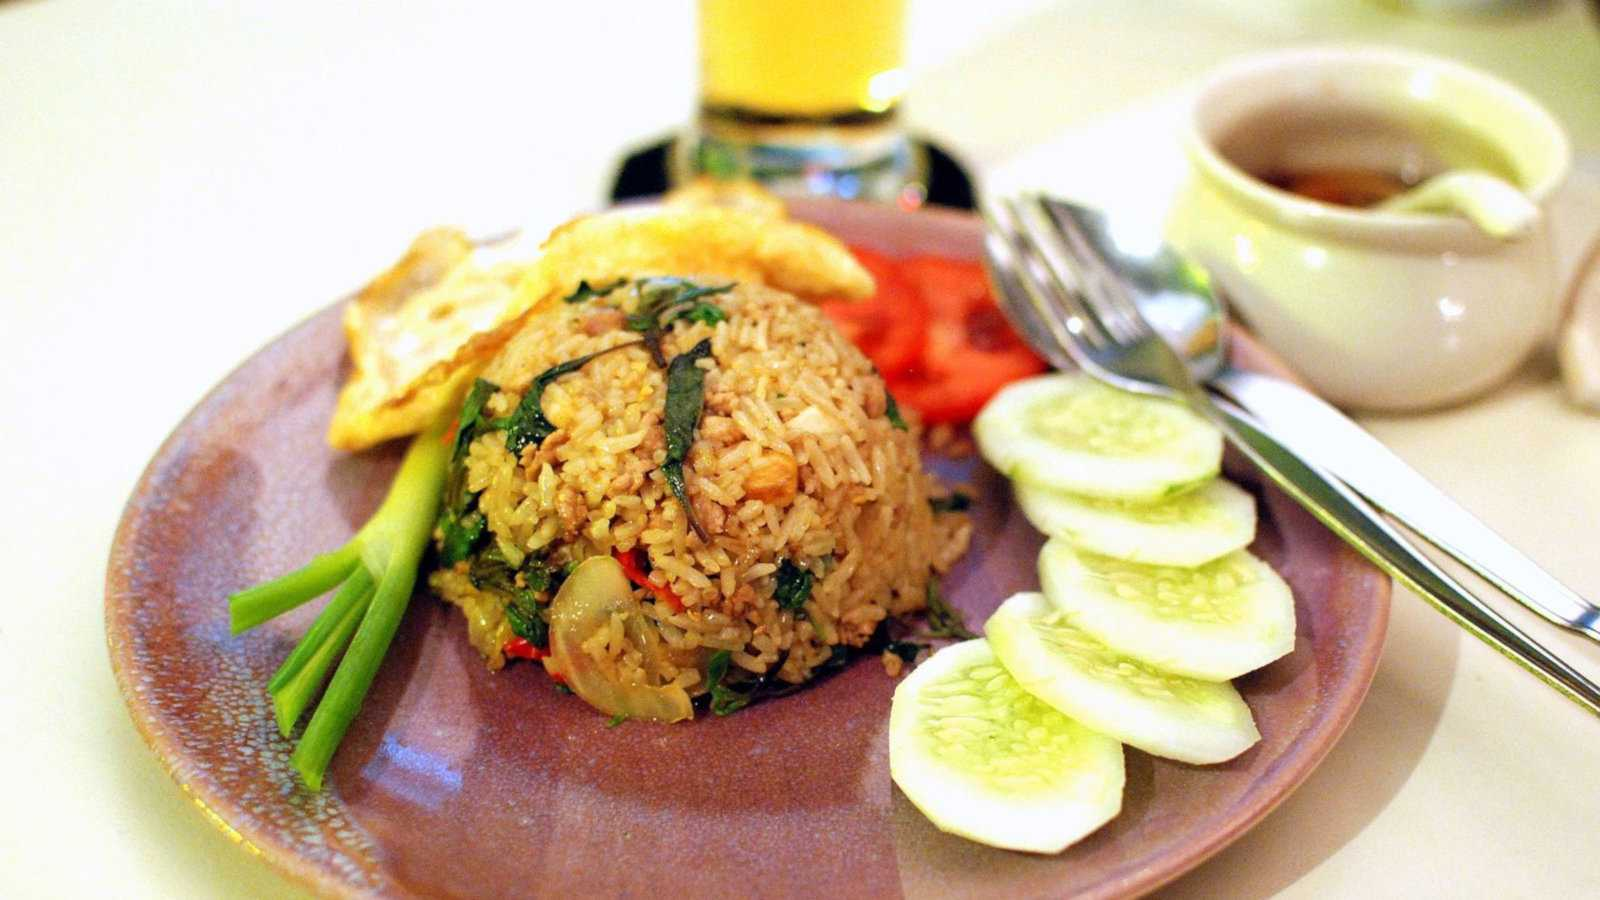 The Thai version of fried rice uses a spicy fish sauce as the base rather than soy sauce like Chinese fried rice